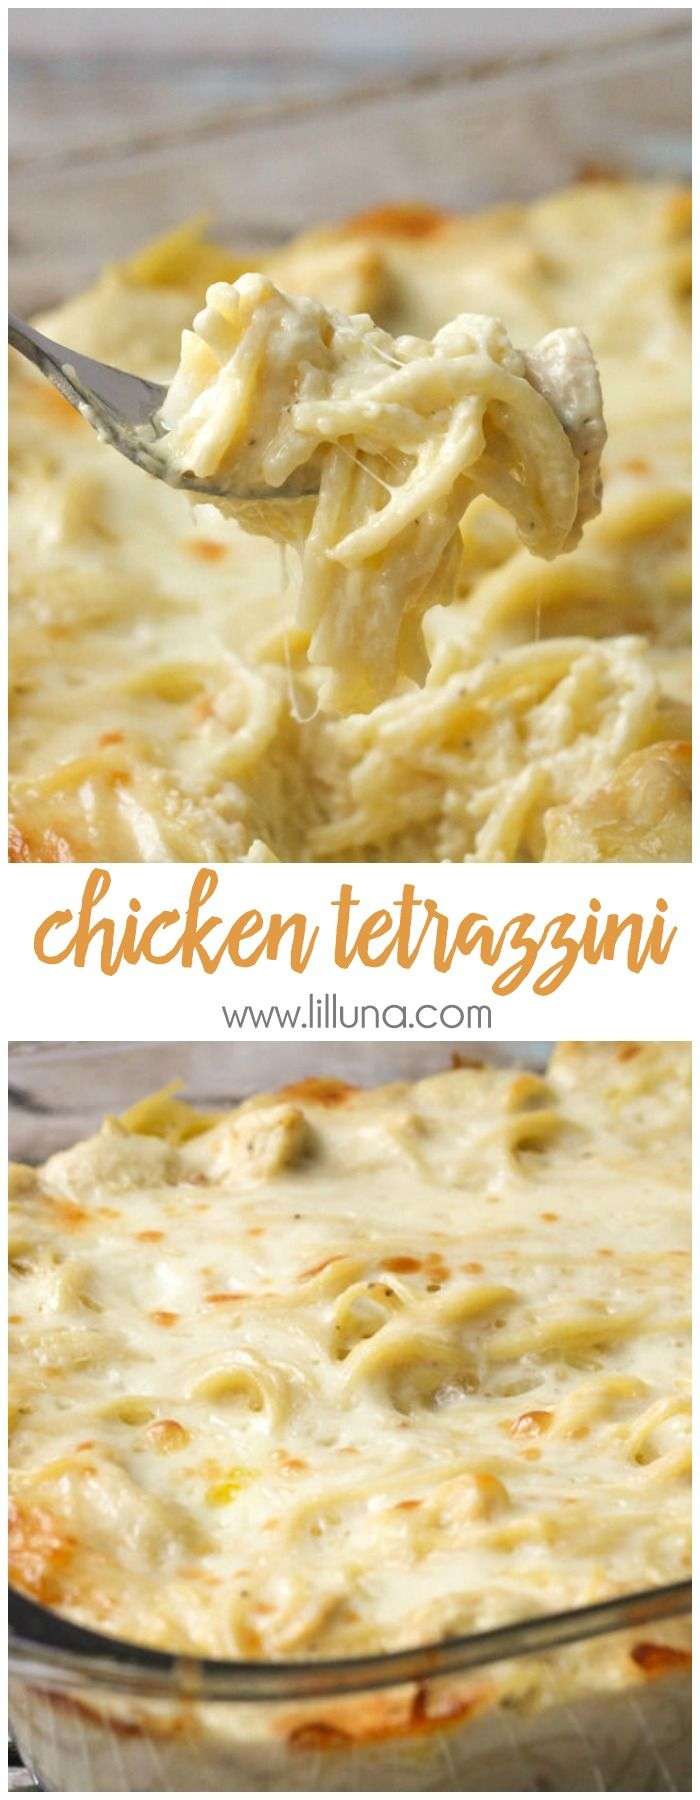 Easy and delicious cheesy chicken tetrazzini a family favorite easy and delicious cheesy chicken tetrazzini a family favorite dinner meal lilluna forumfinder Images